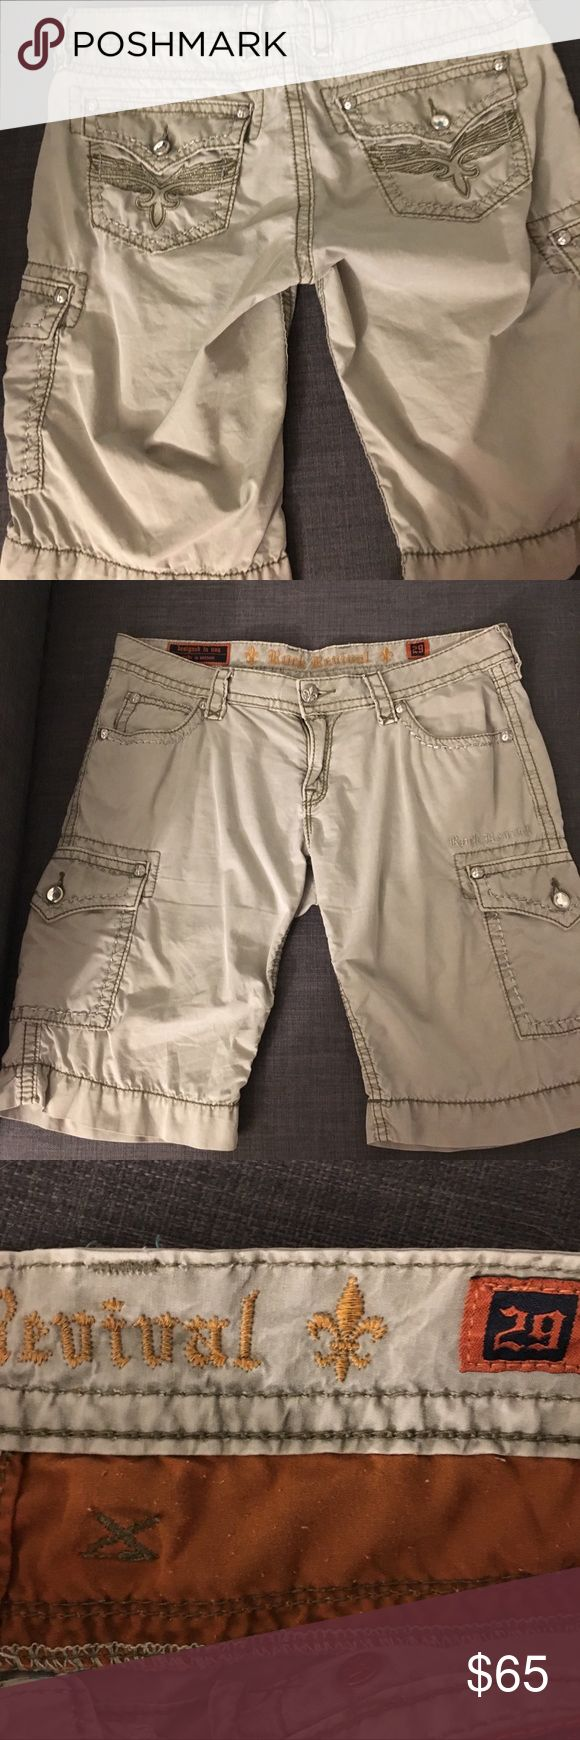 """Rock Revival shorts The only thing wrong with these shorts is that they don't fit me. There was a time, but sadly I think when I purchased these, it was wishful thinking. I bought them gently used, but never wore them. Just trying to recoup what I spent! If you like these, see other listing for white pair - everything is same but the color.  Laying flat waist is 17"""" across. Inseam is 12"""", zipper is 4"""". They look adorable rolled up too! 100% Cotton, zero stretch. Silver and green stitching…"""